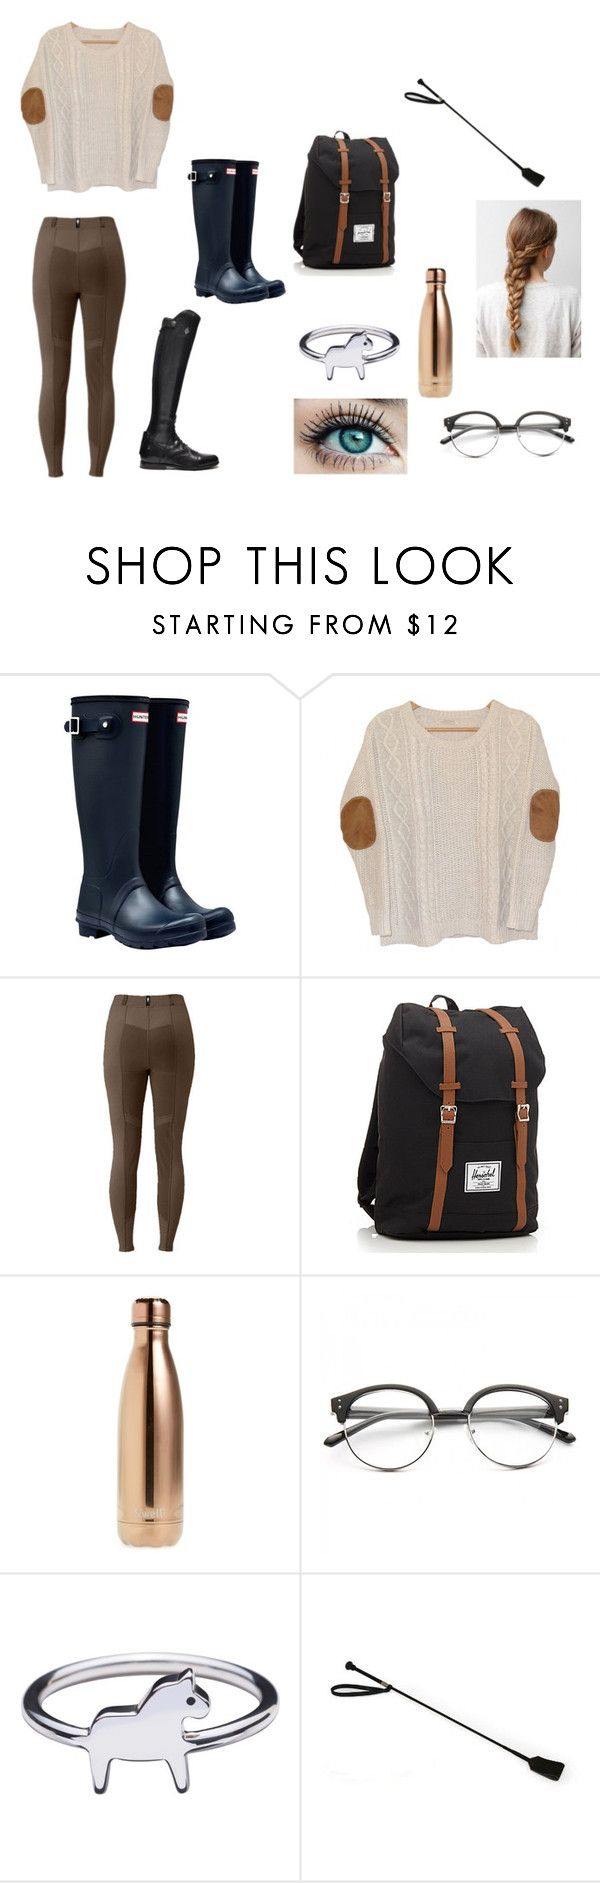 """""""My perfect fall day in the barn🍂"""" by kylieirwin11 ❤ liked on Polyvore featuring Hunter, Urban Outfitters, Herschel, S'well and Concord"""